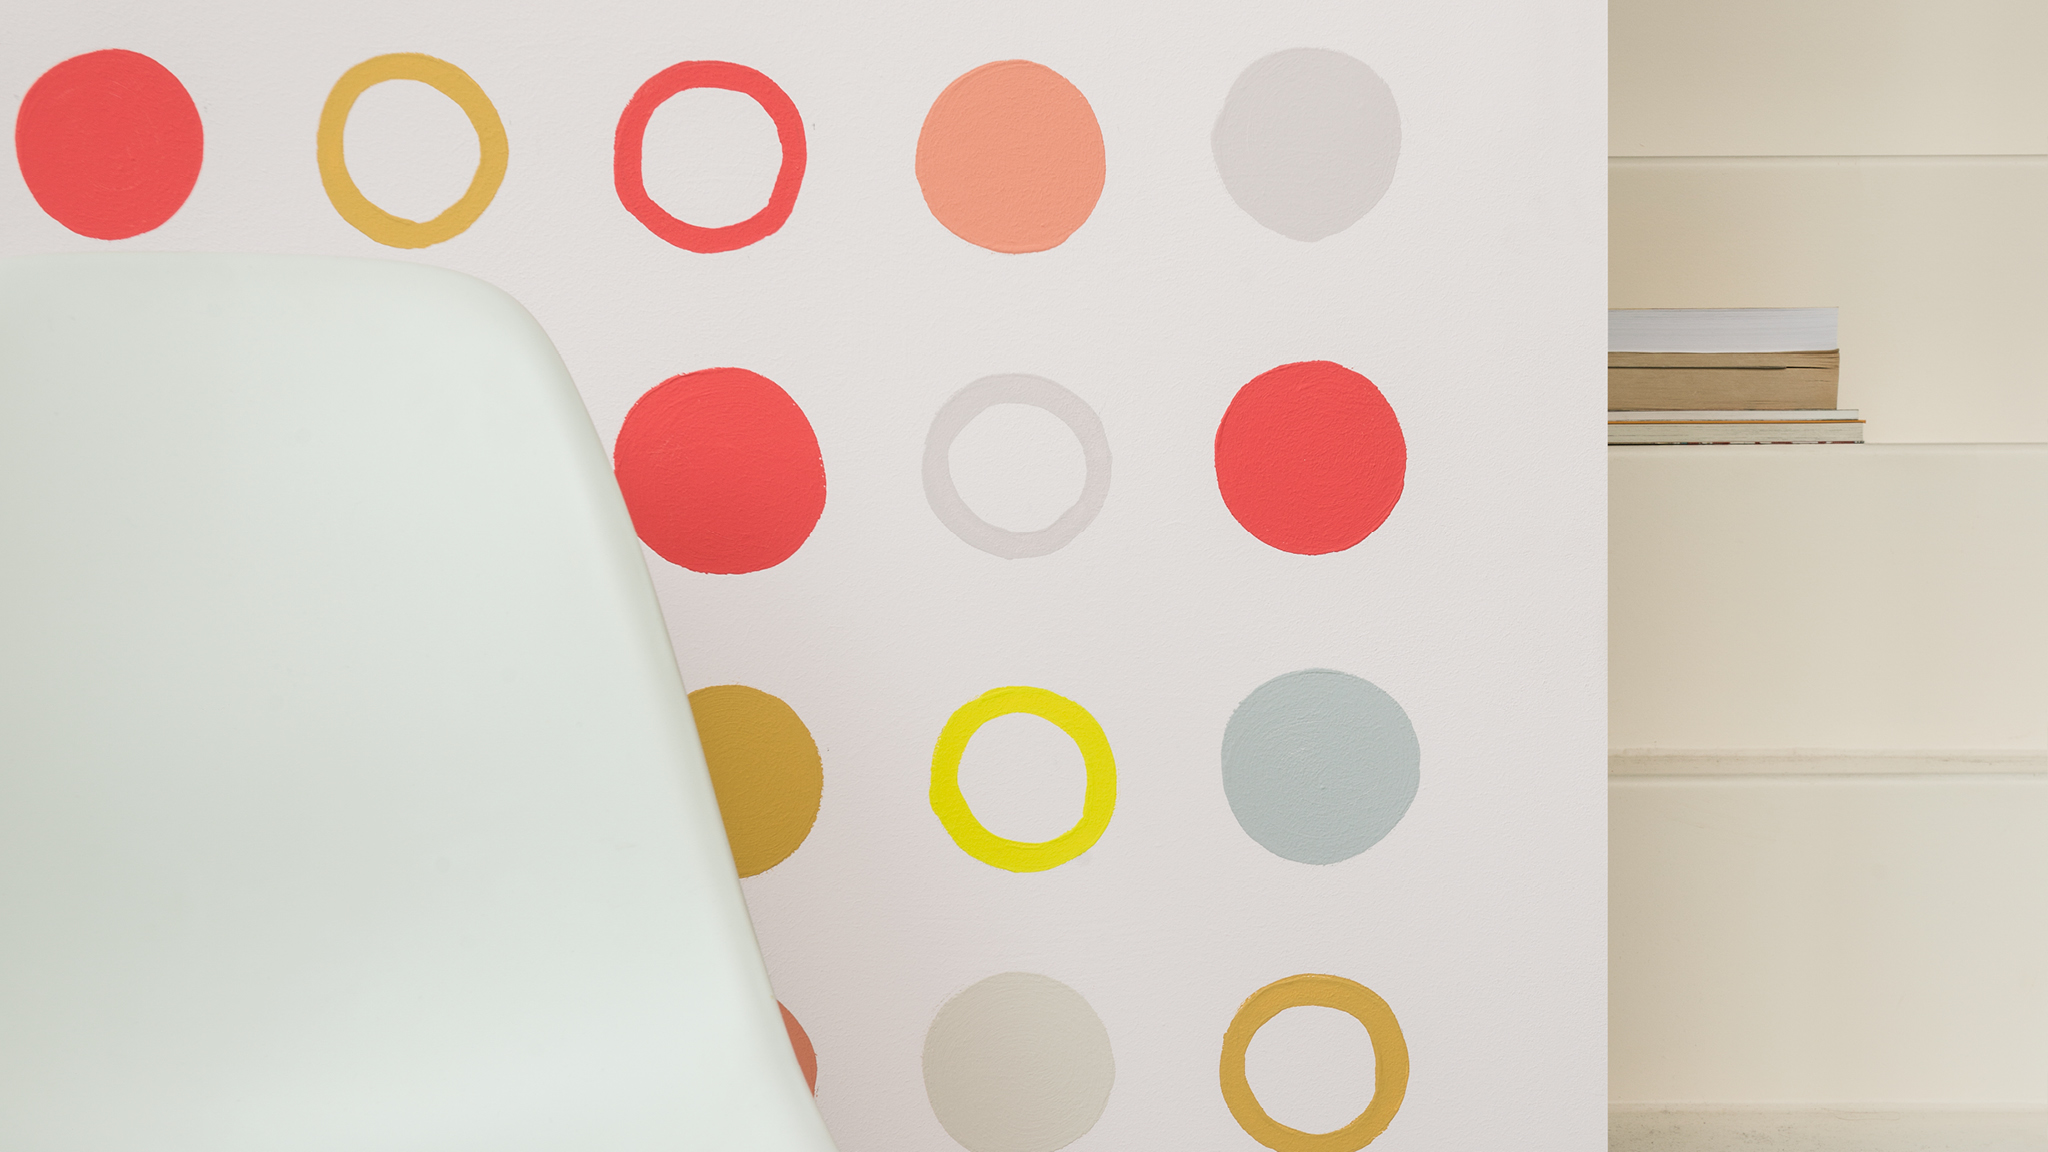 Design a creative and energising breakout space by painting circles in different hues on your wall.